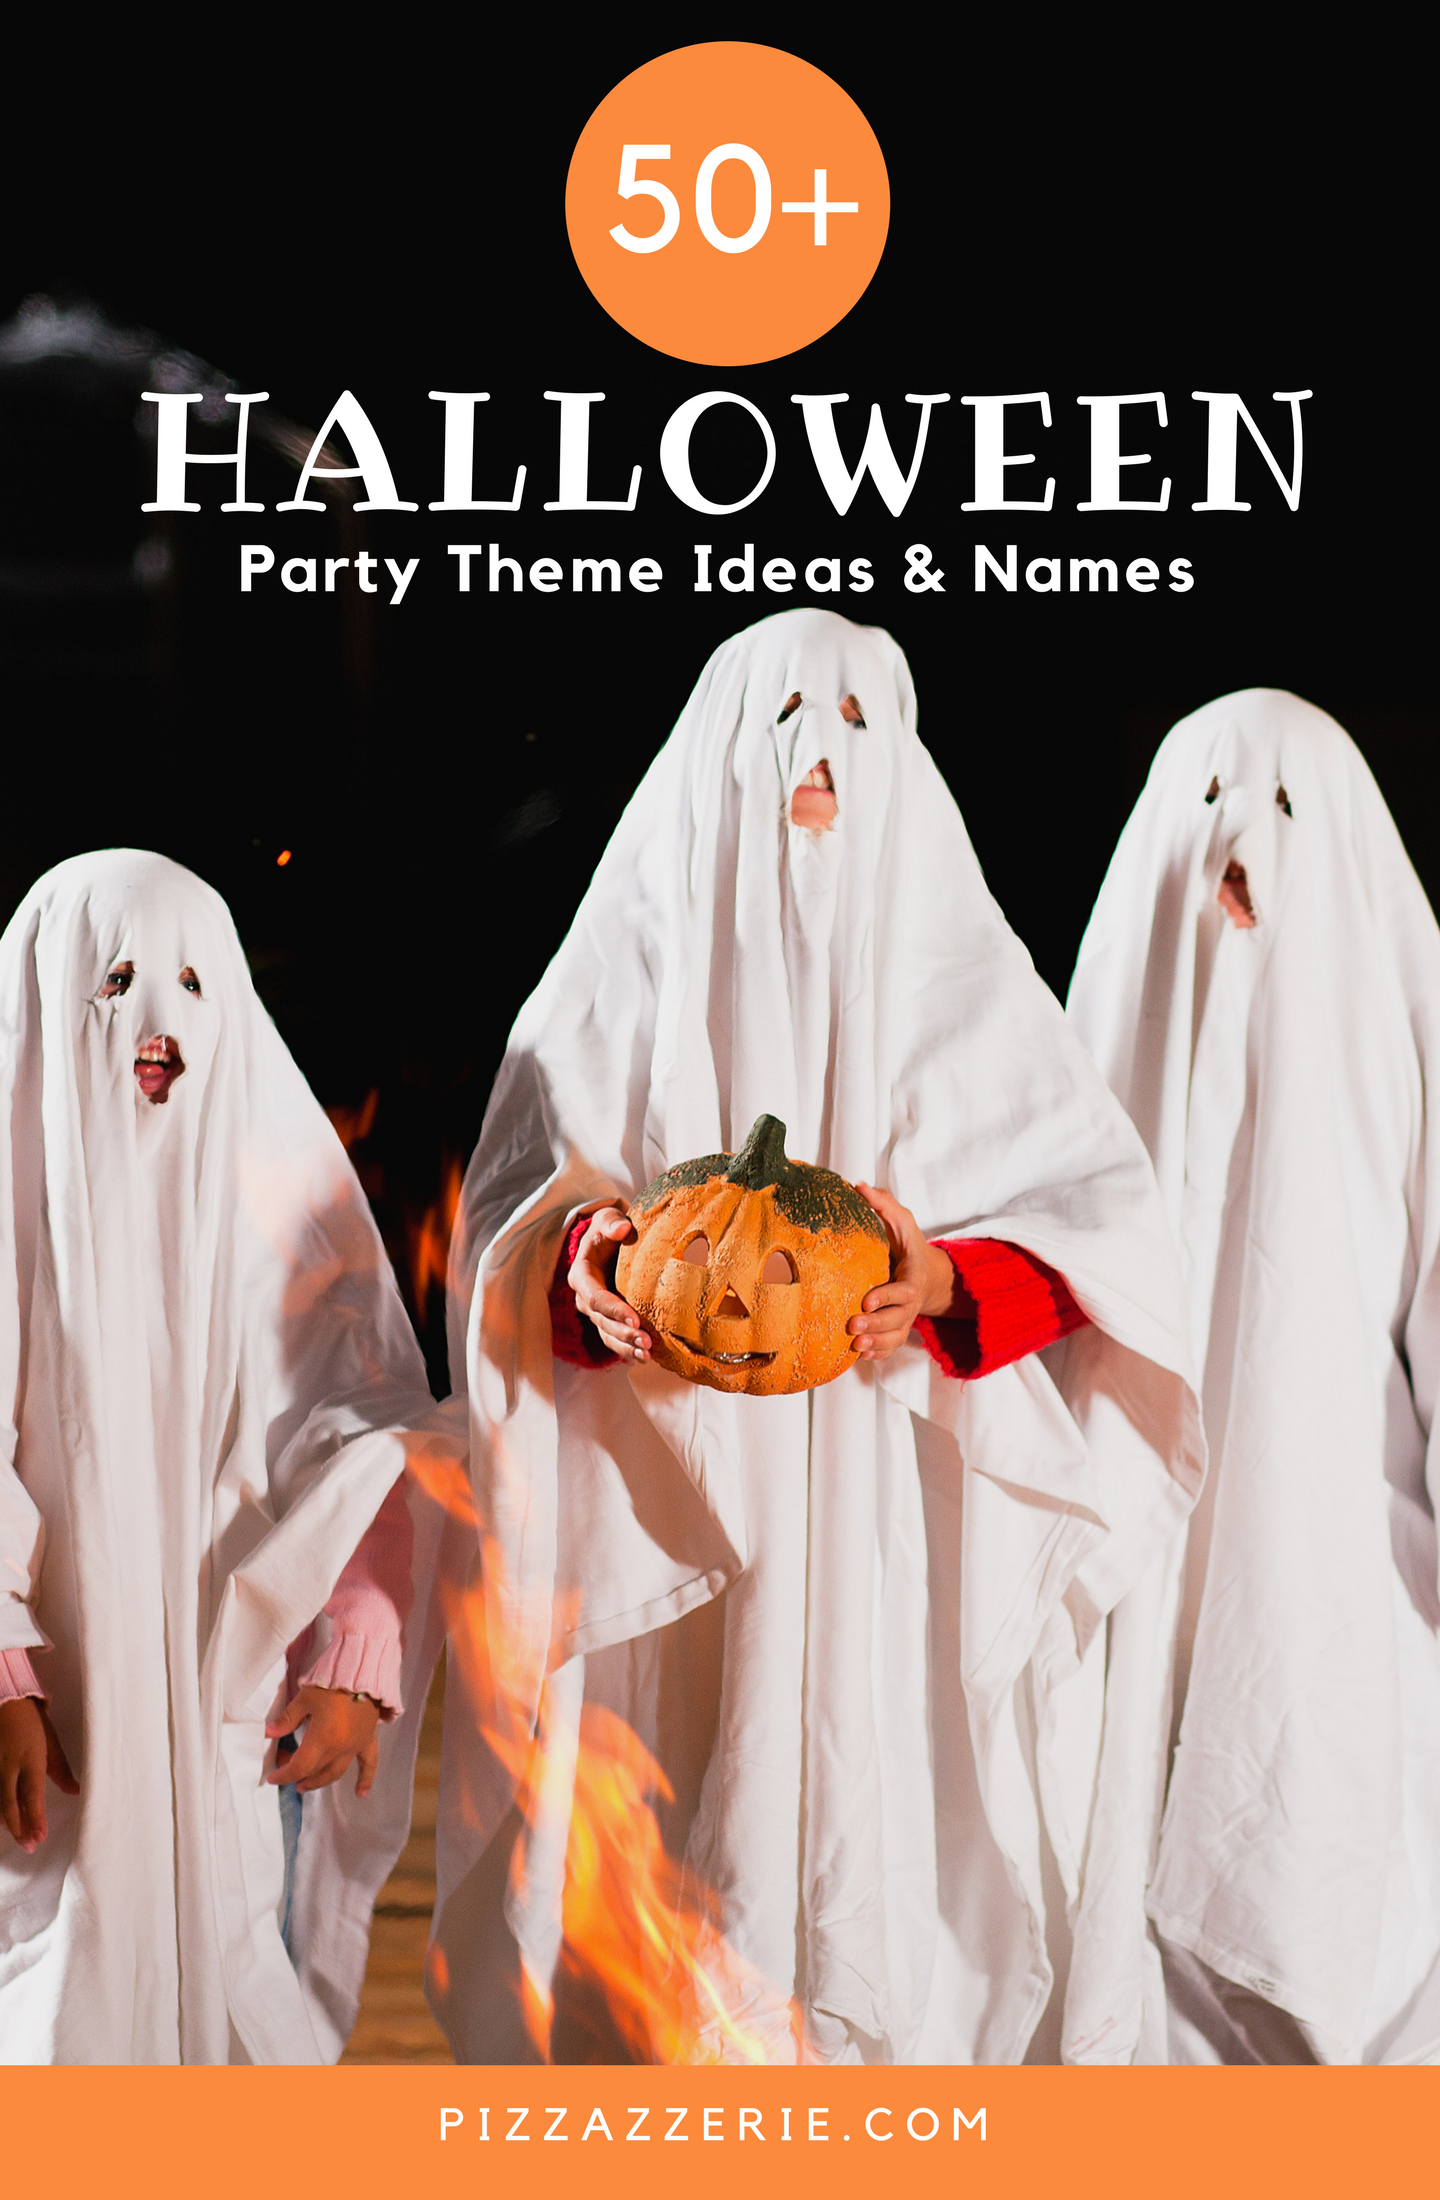 Pin on Halloween Party Ideas